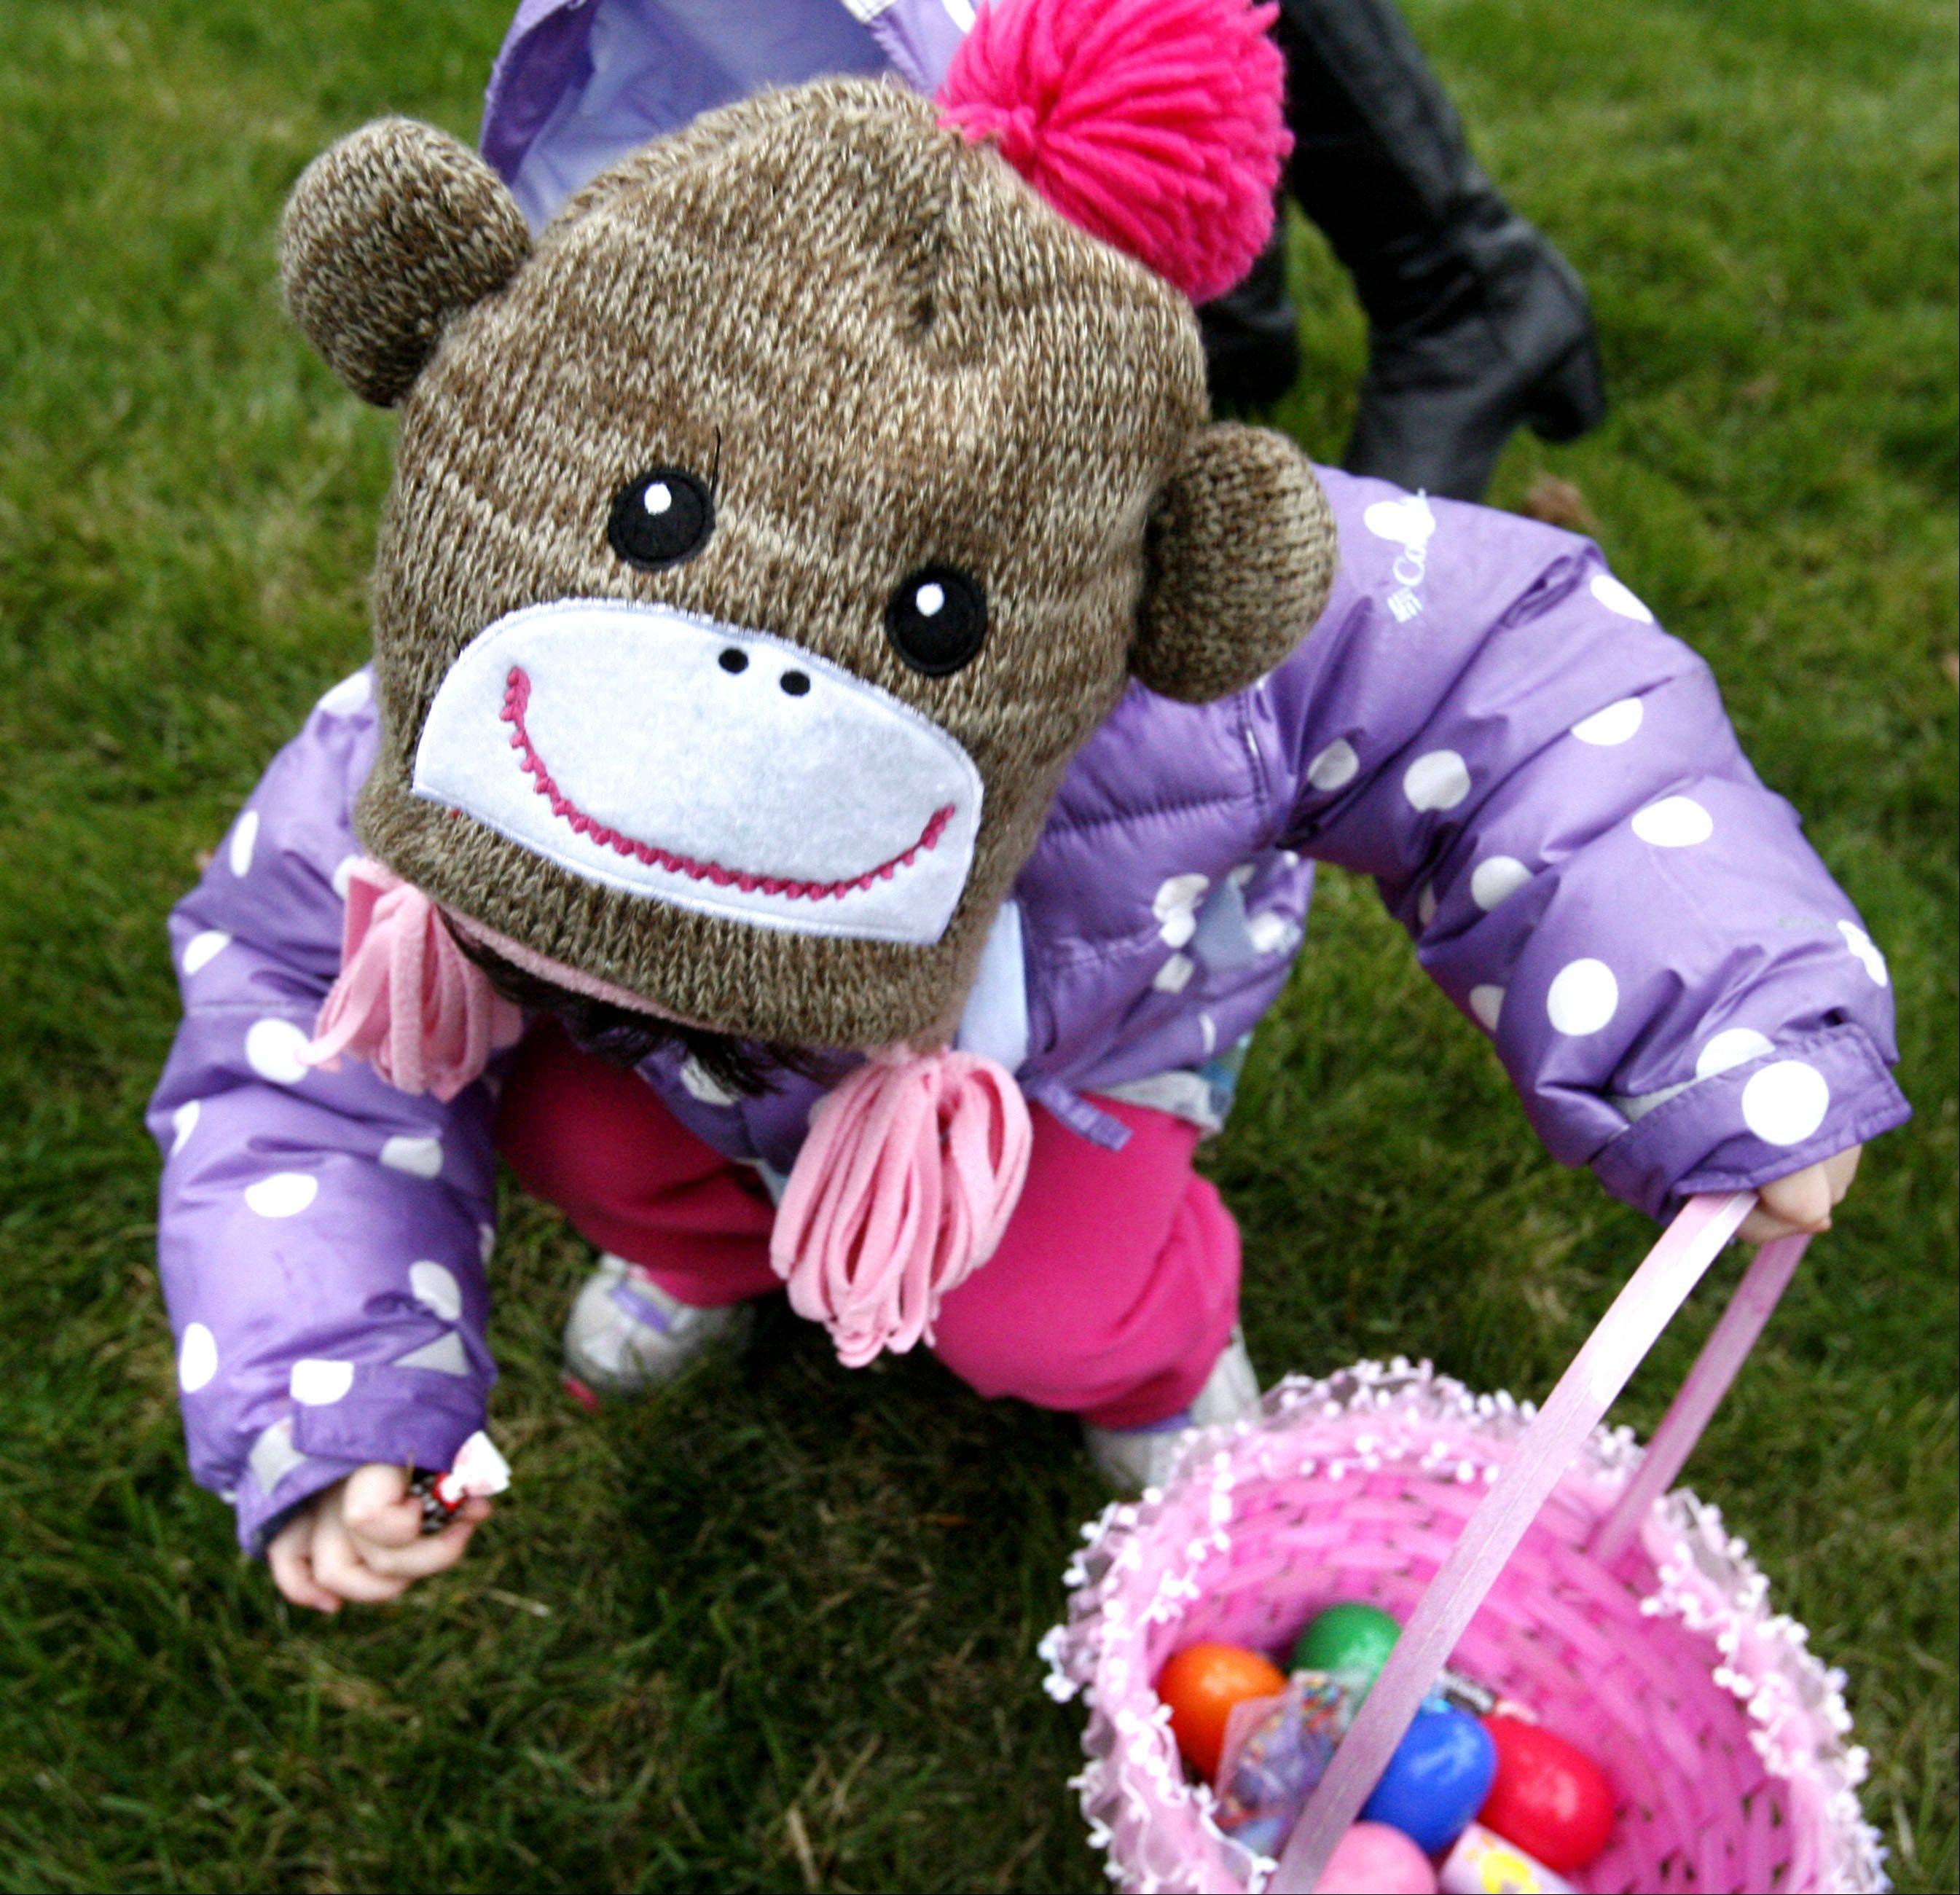 Emily Cheug, 3, of Mundelein, wearing a winter monkey hat picks up candy and filled plastic eggs at Wauconda Park District's annual Easter egg hunt at Cook Park on Saturday, March 31st.